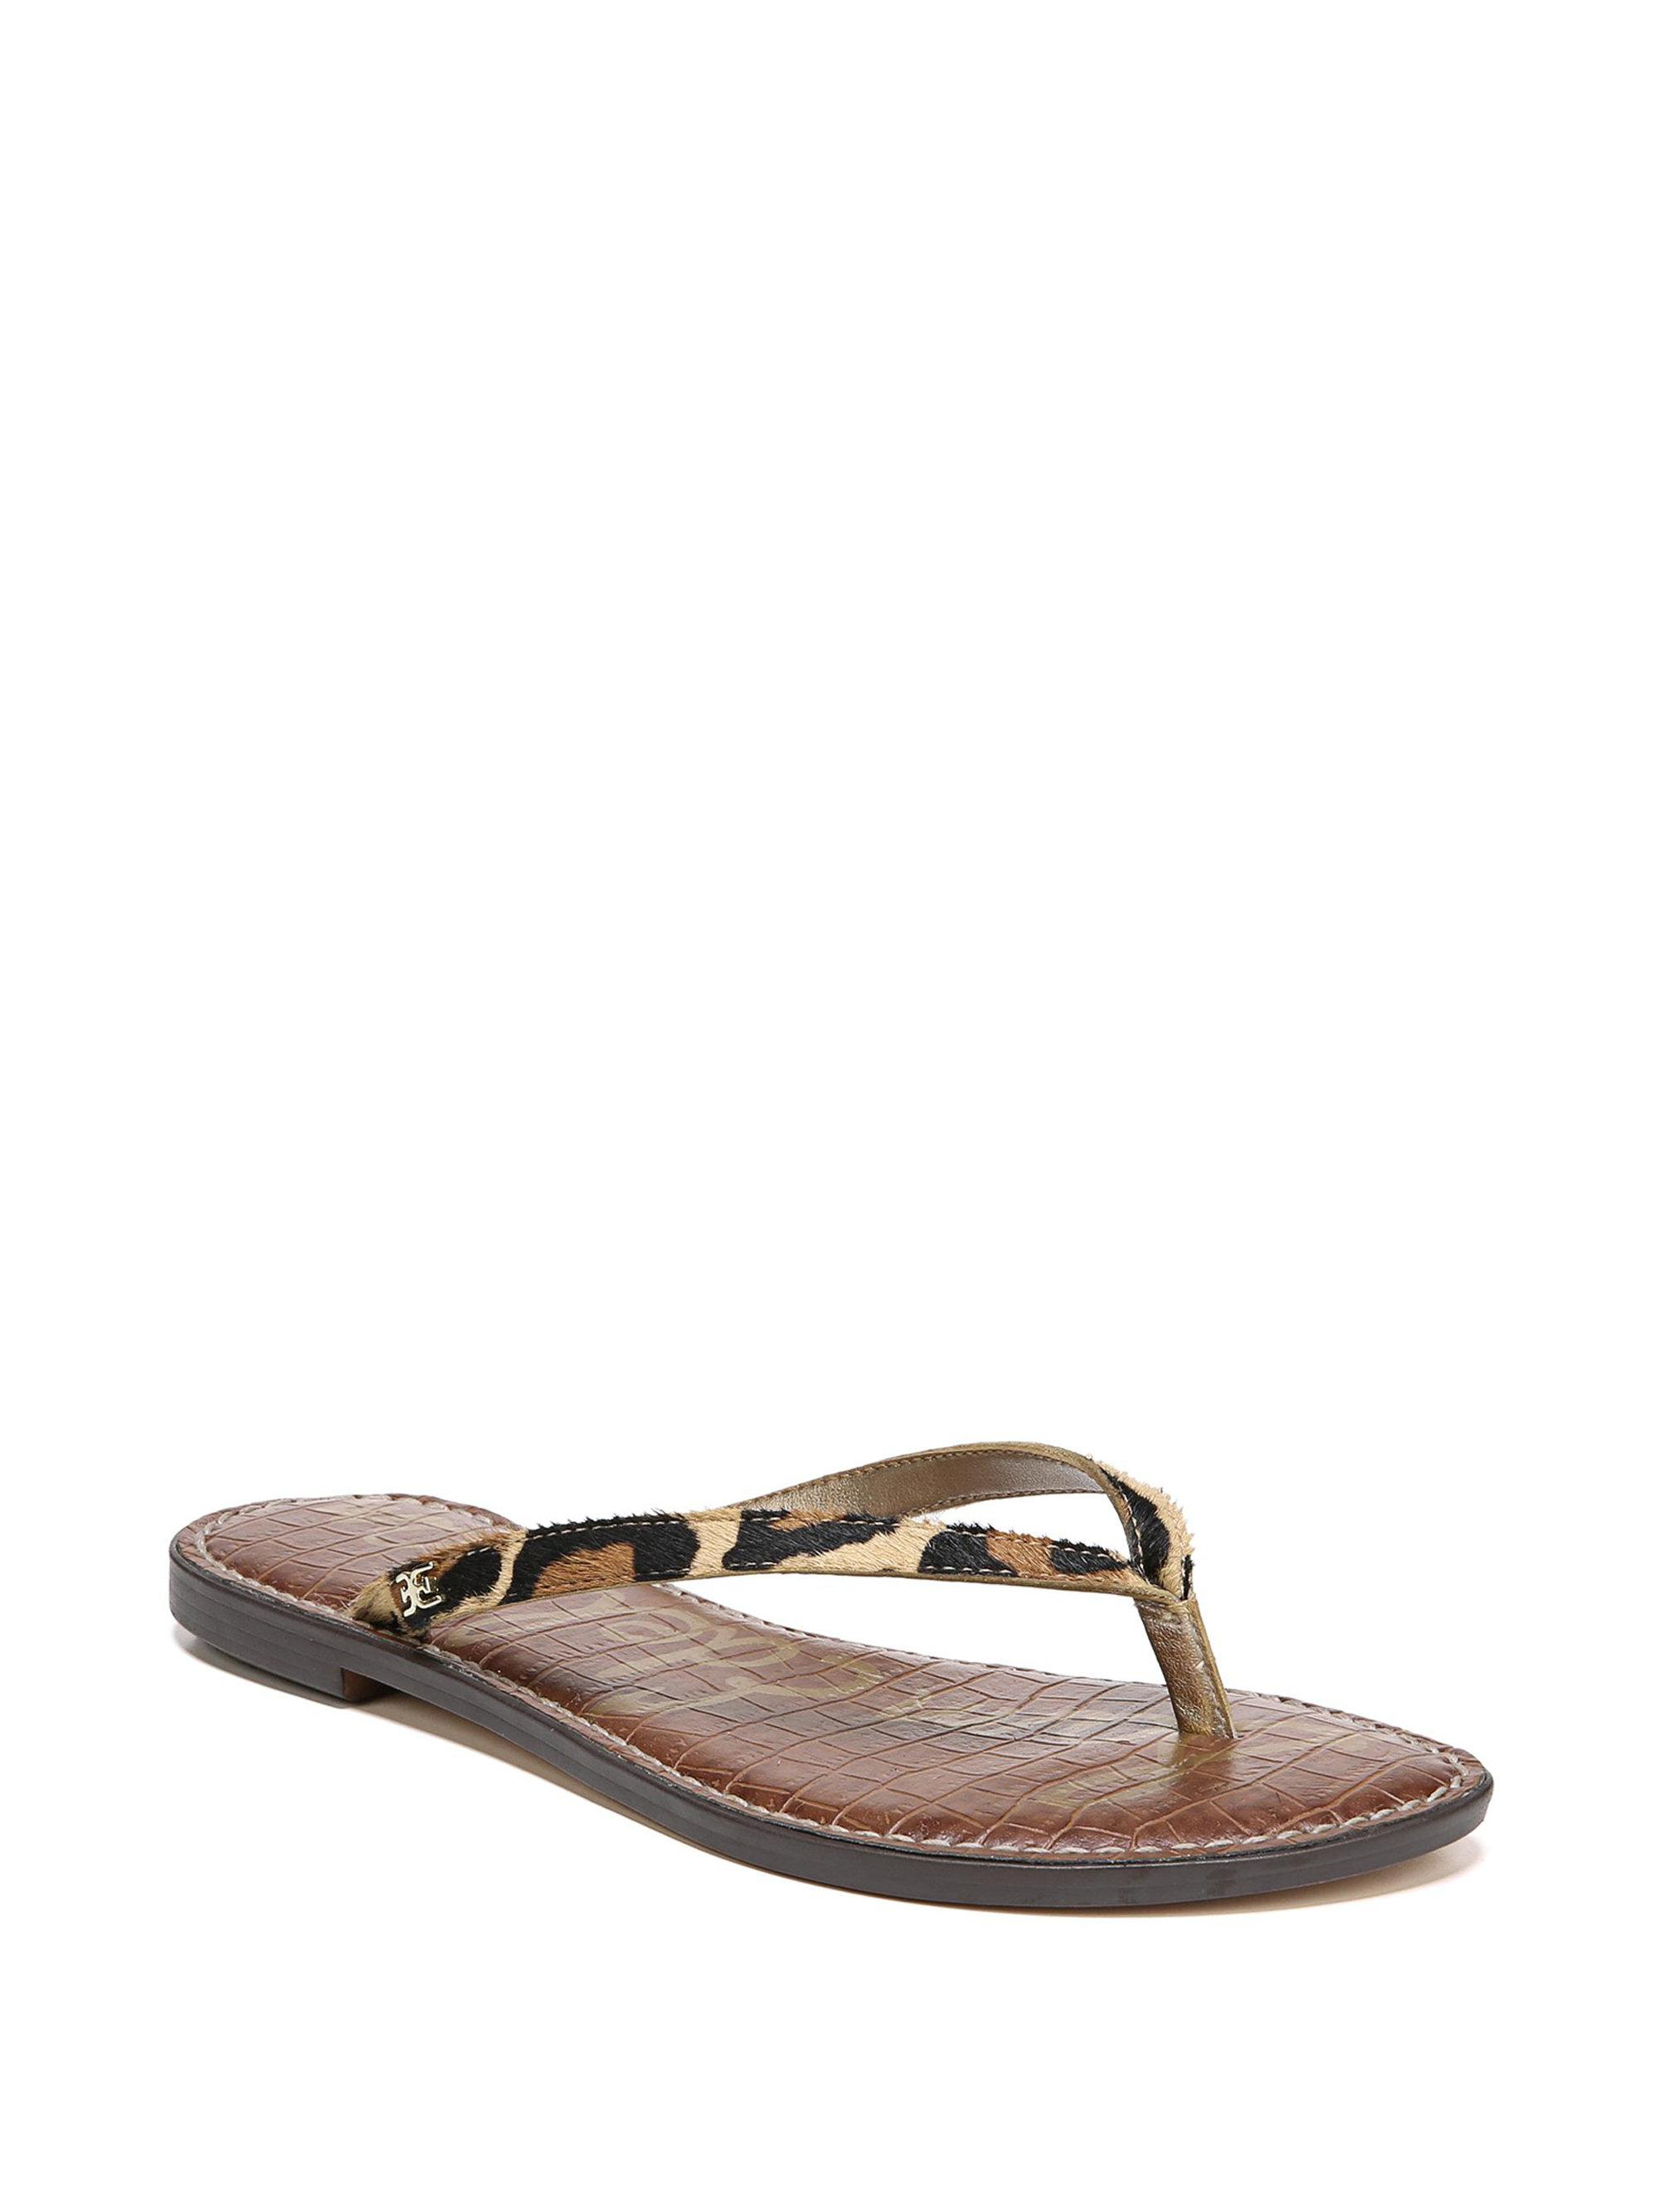 4bbdb26b85f4 Lyst - Sam Edelman Gracie Leopard Brahma Hair Thong Sandals in Brown